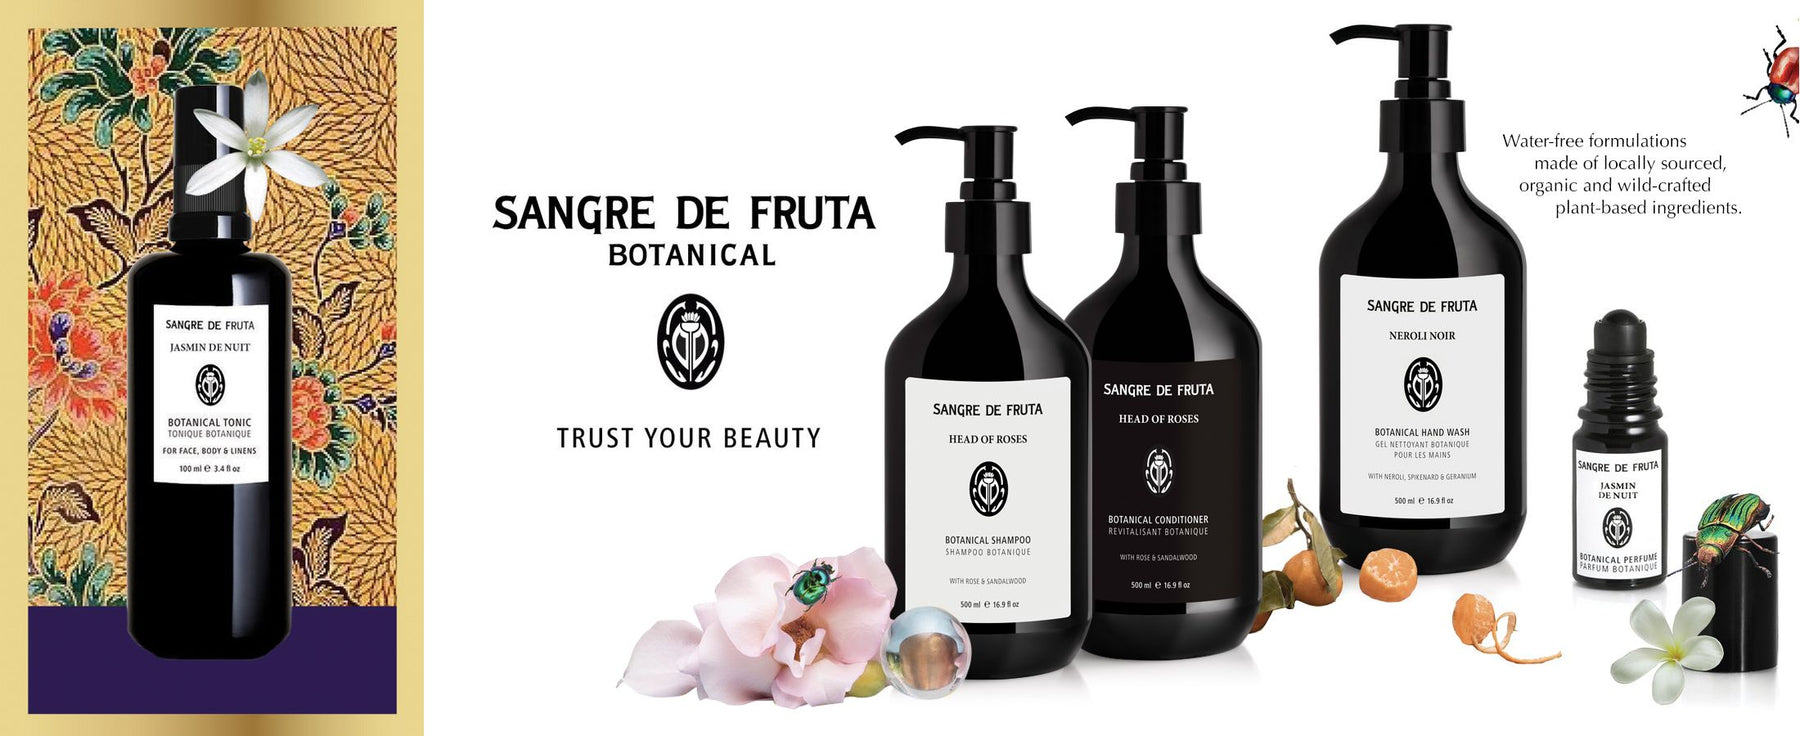 Sangre de Fruta Botanical - Trust Your Beauty. A selection of products: skincare, body care and roll on perfume. Water-free formulations made of locally sourced, organic and wild-crafted plant-based ingredients. Flowers and illustration in the background.